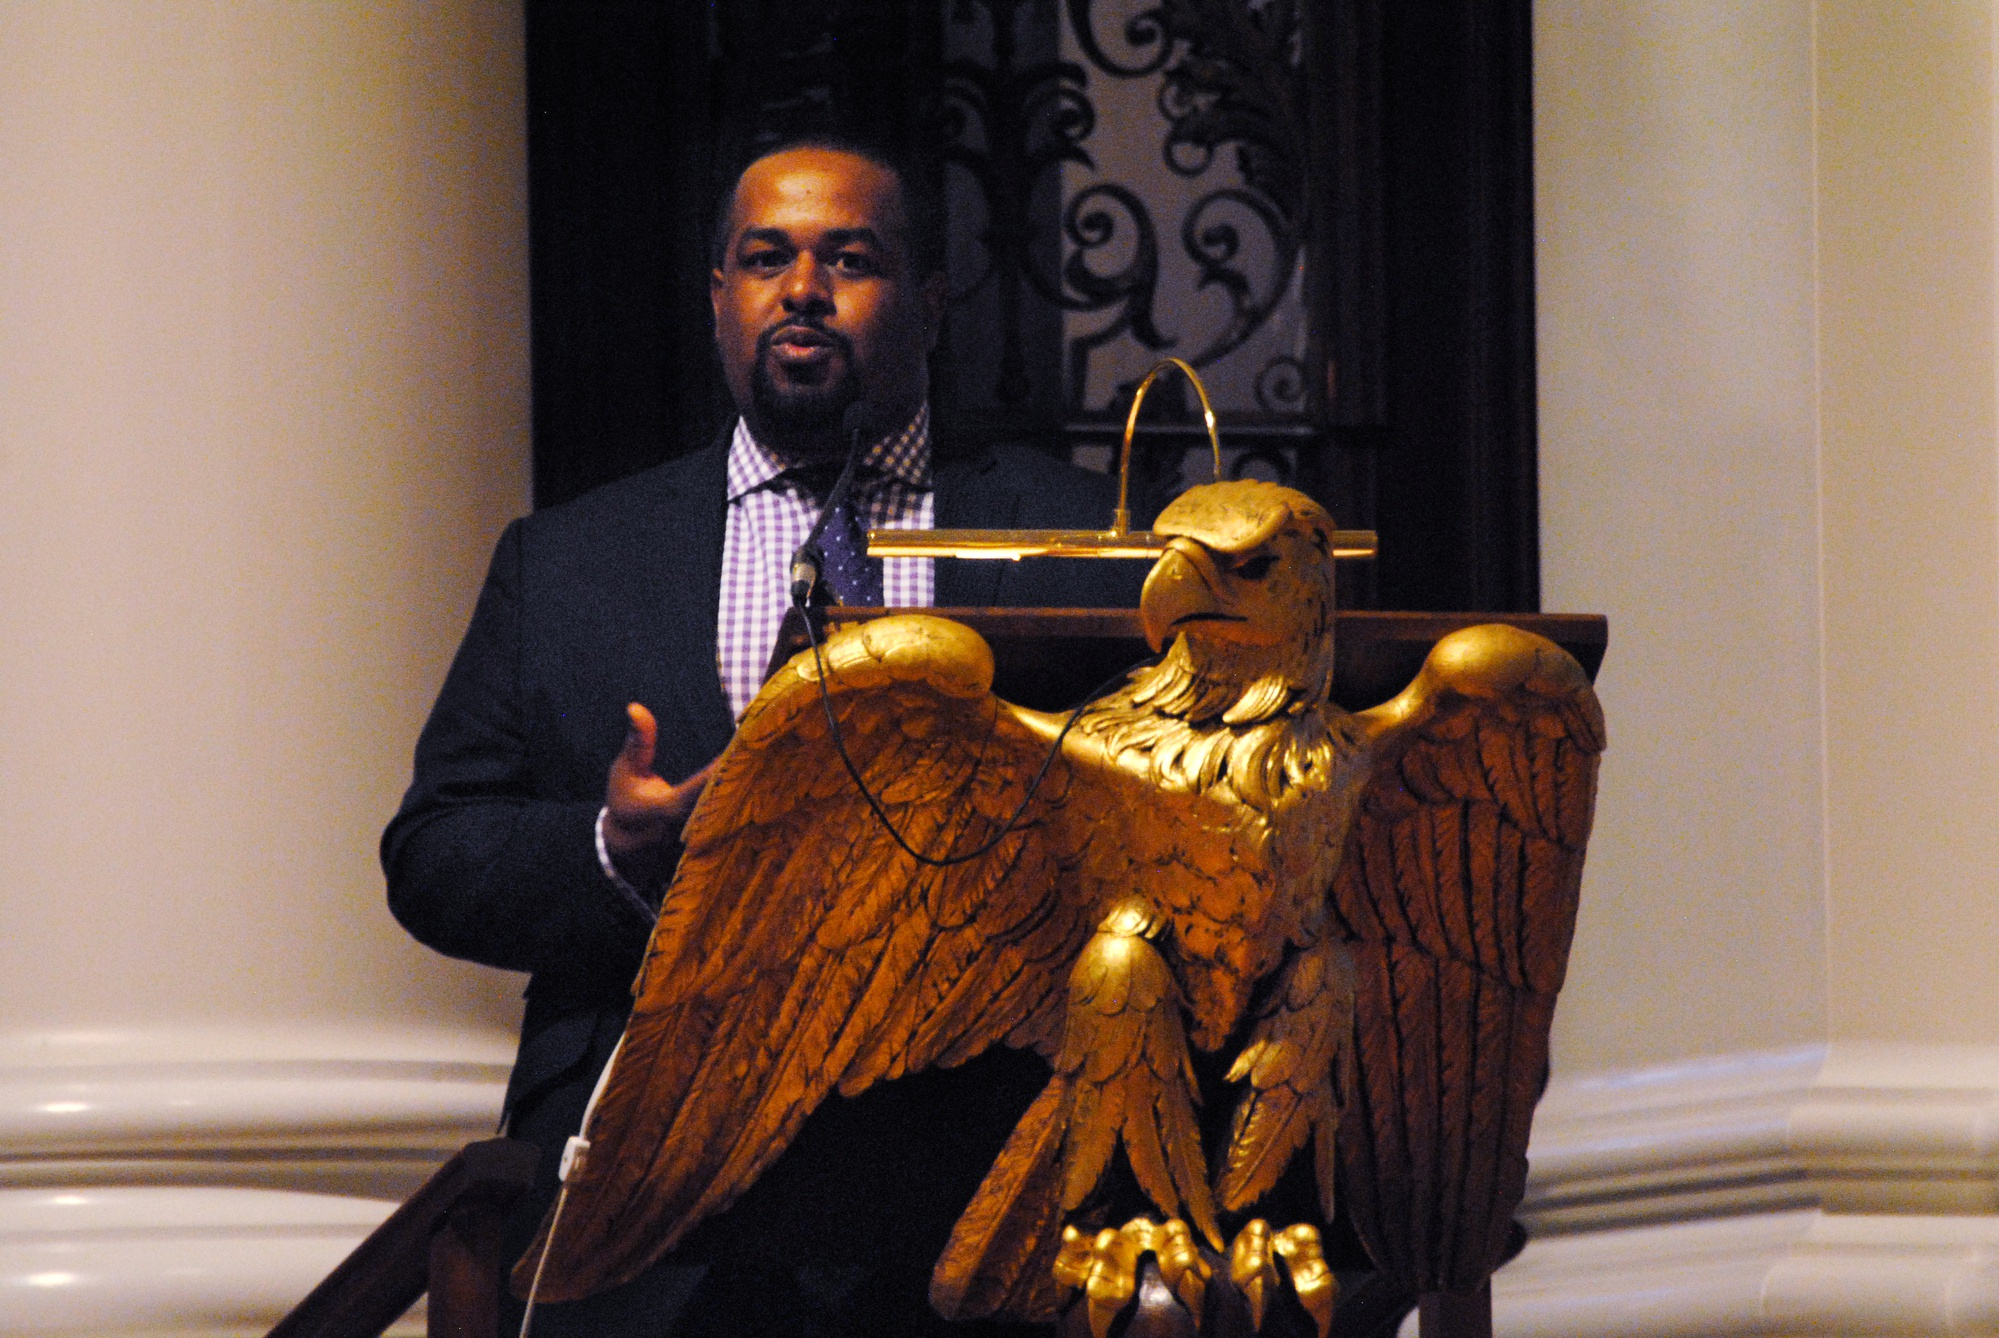 Joshua DuBois, former Special Assistant to President Obama and Executive Director of the White House Office of Faith-Based and Neighborhood Partnerships, gives the William Belden Noble Lecture in Memorial Church on Monday.